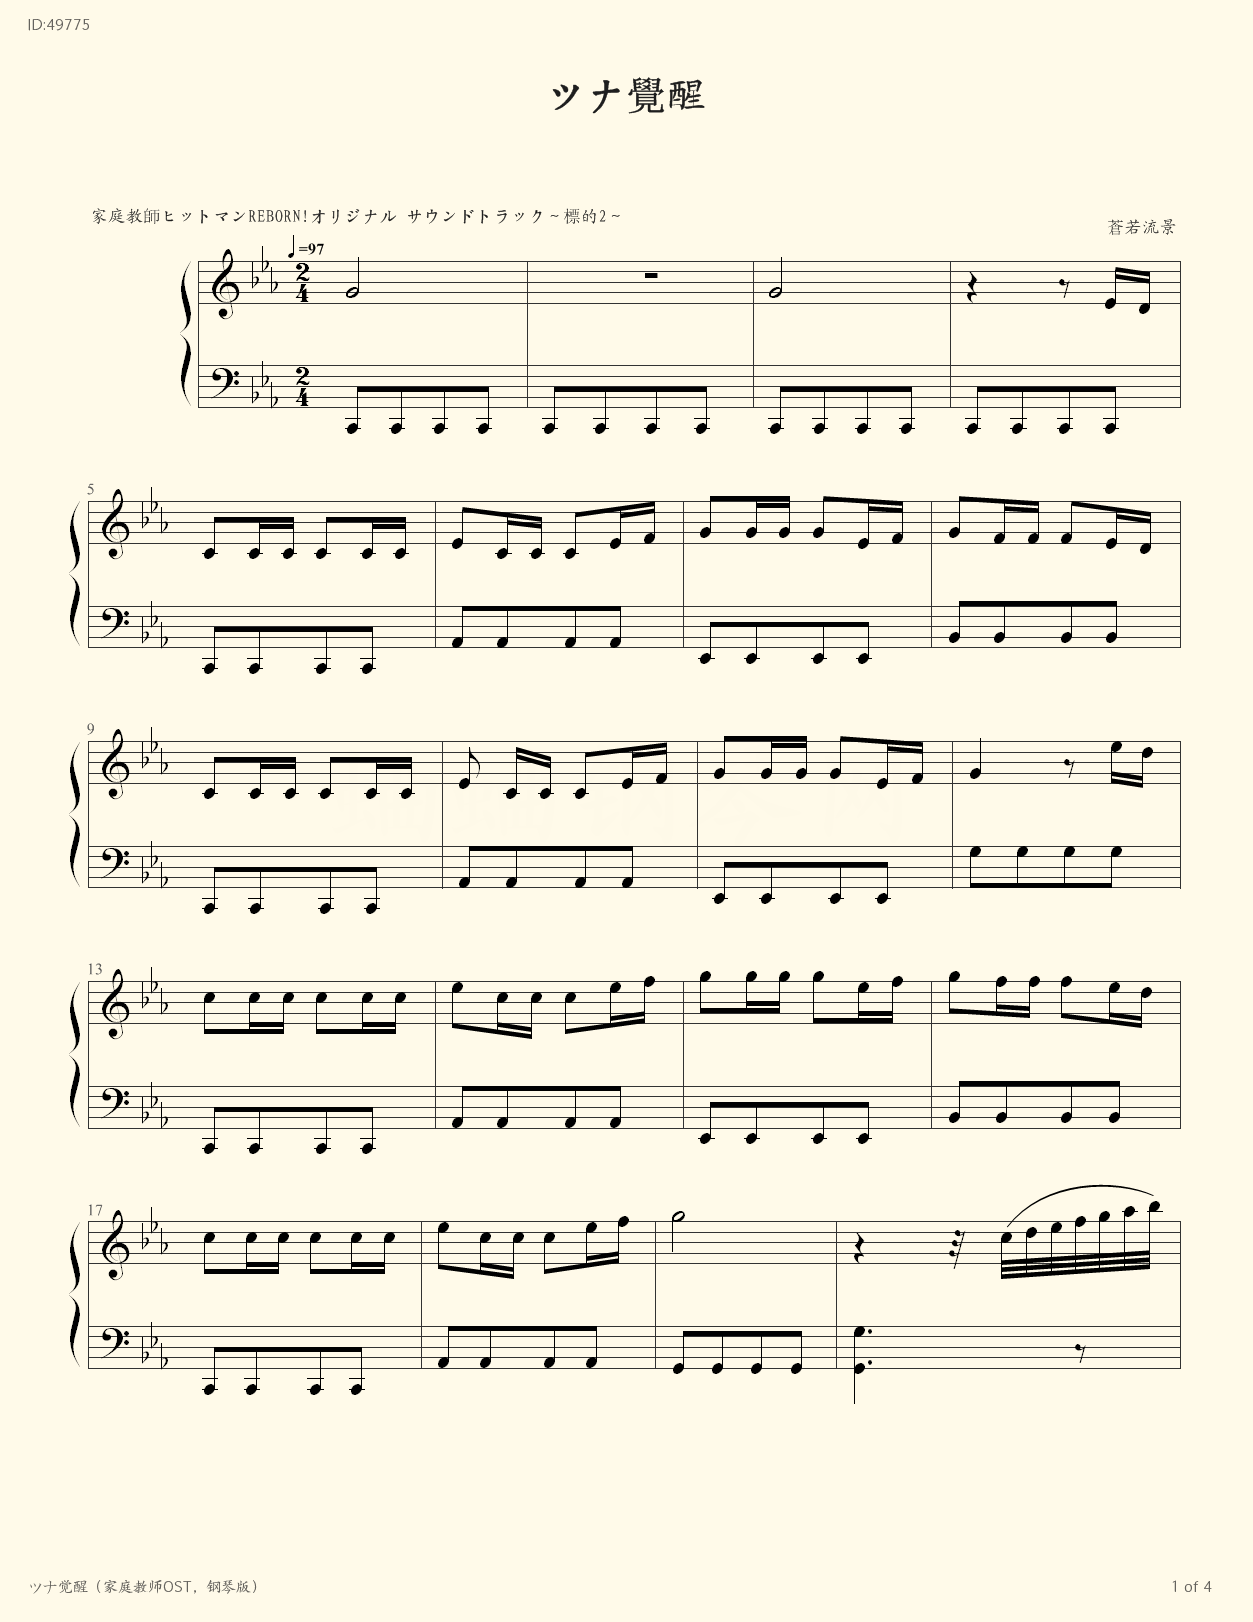 OST  - Movies - first page